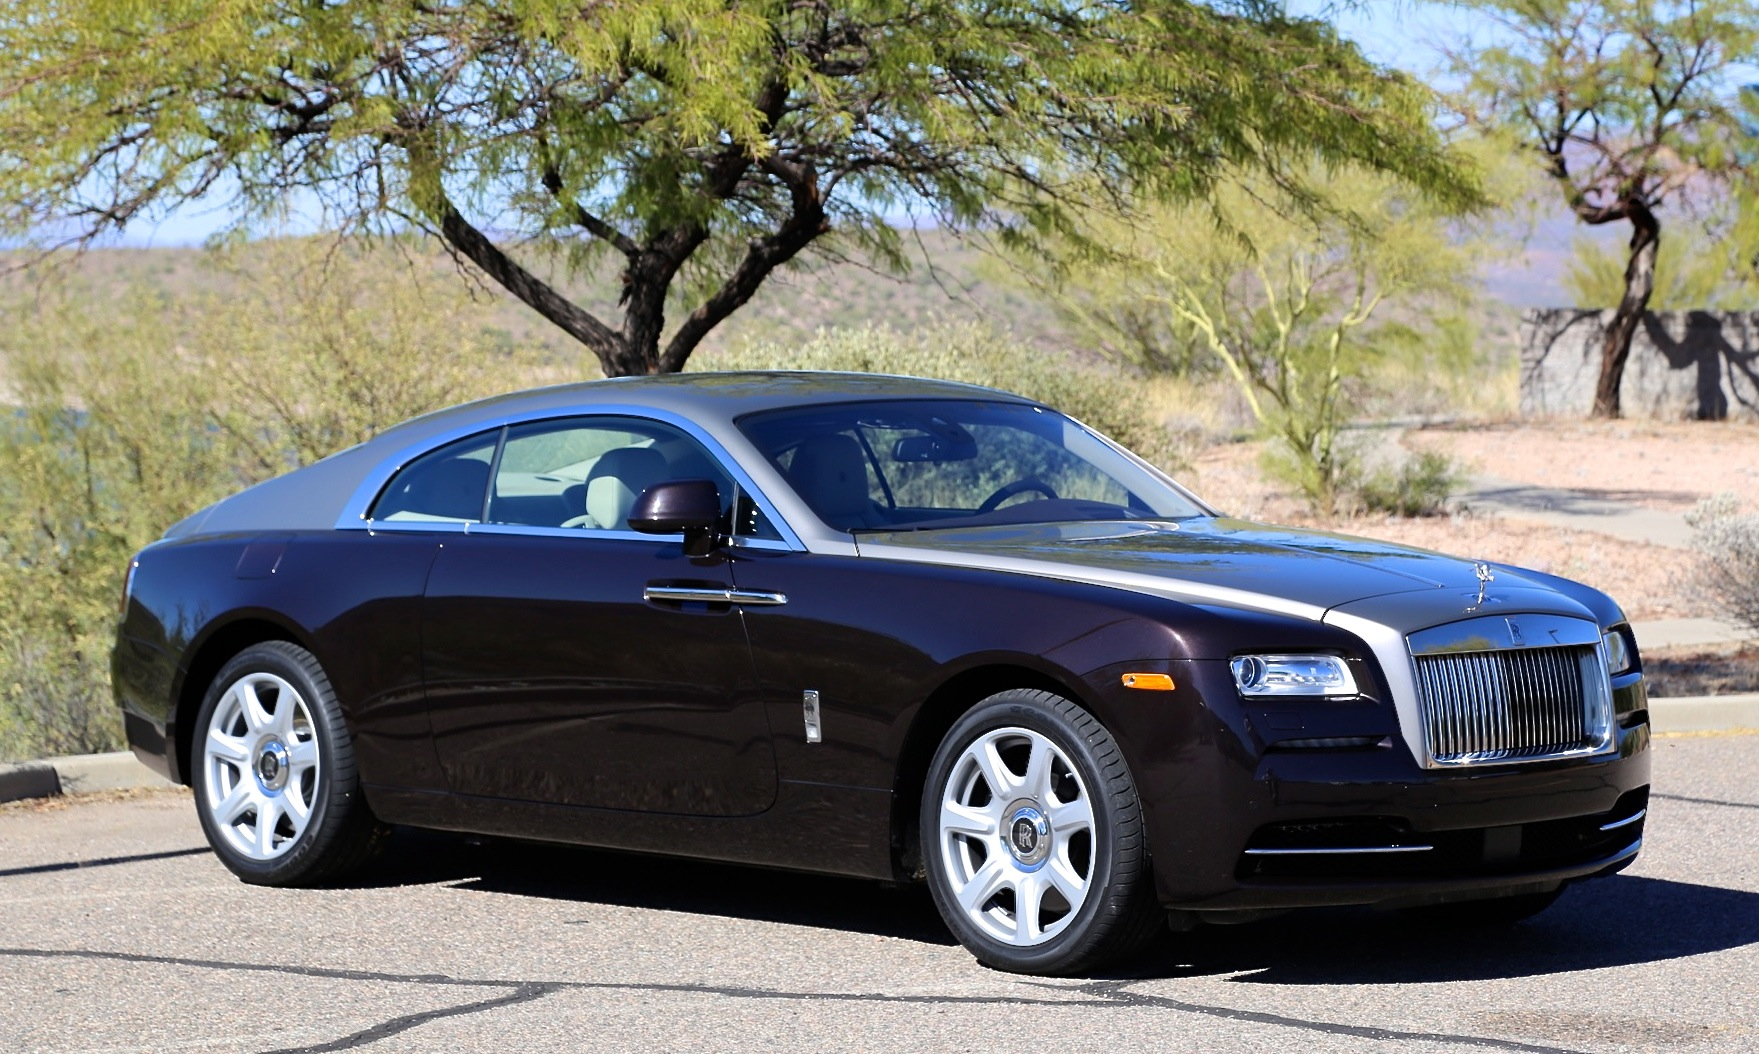 Rolls Royce Wraith Video Review 2014 Rolls-royce Wraith Review